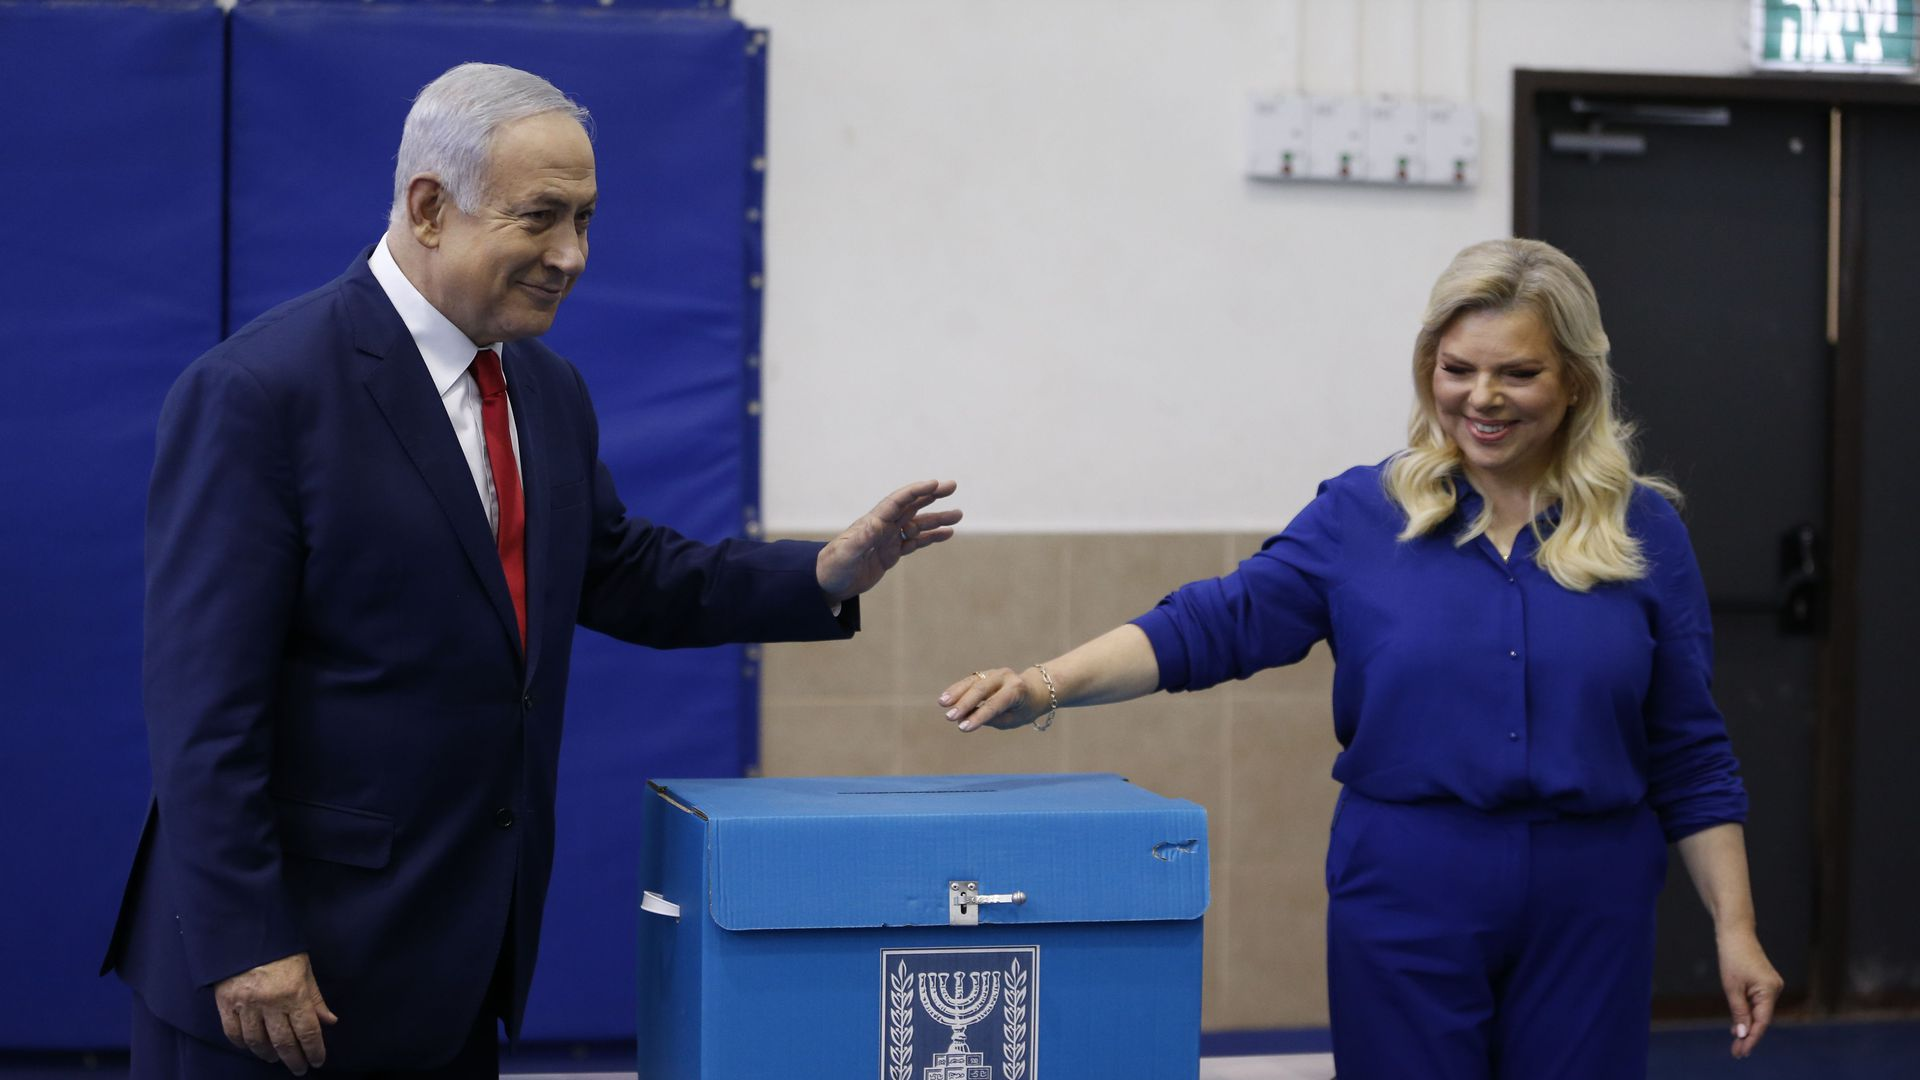 Netanyahu voting with his wife